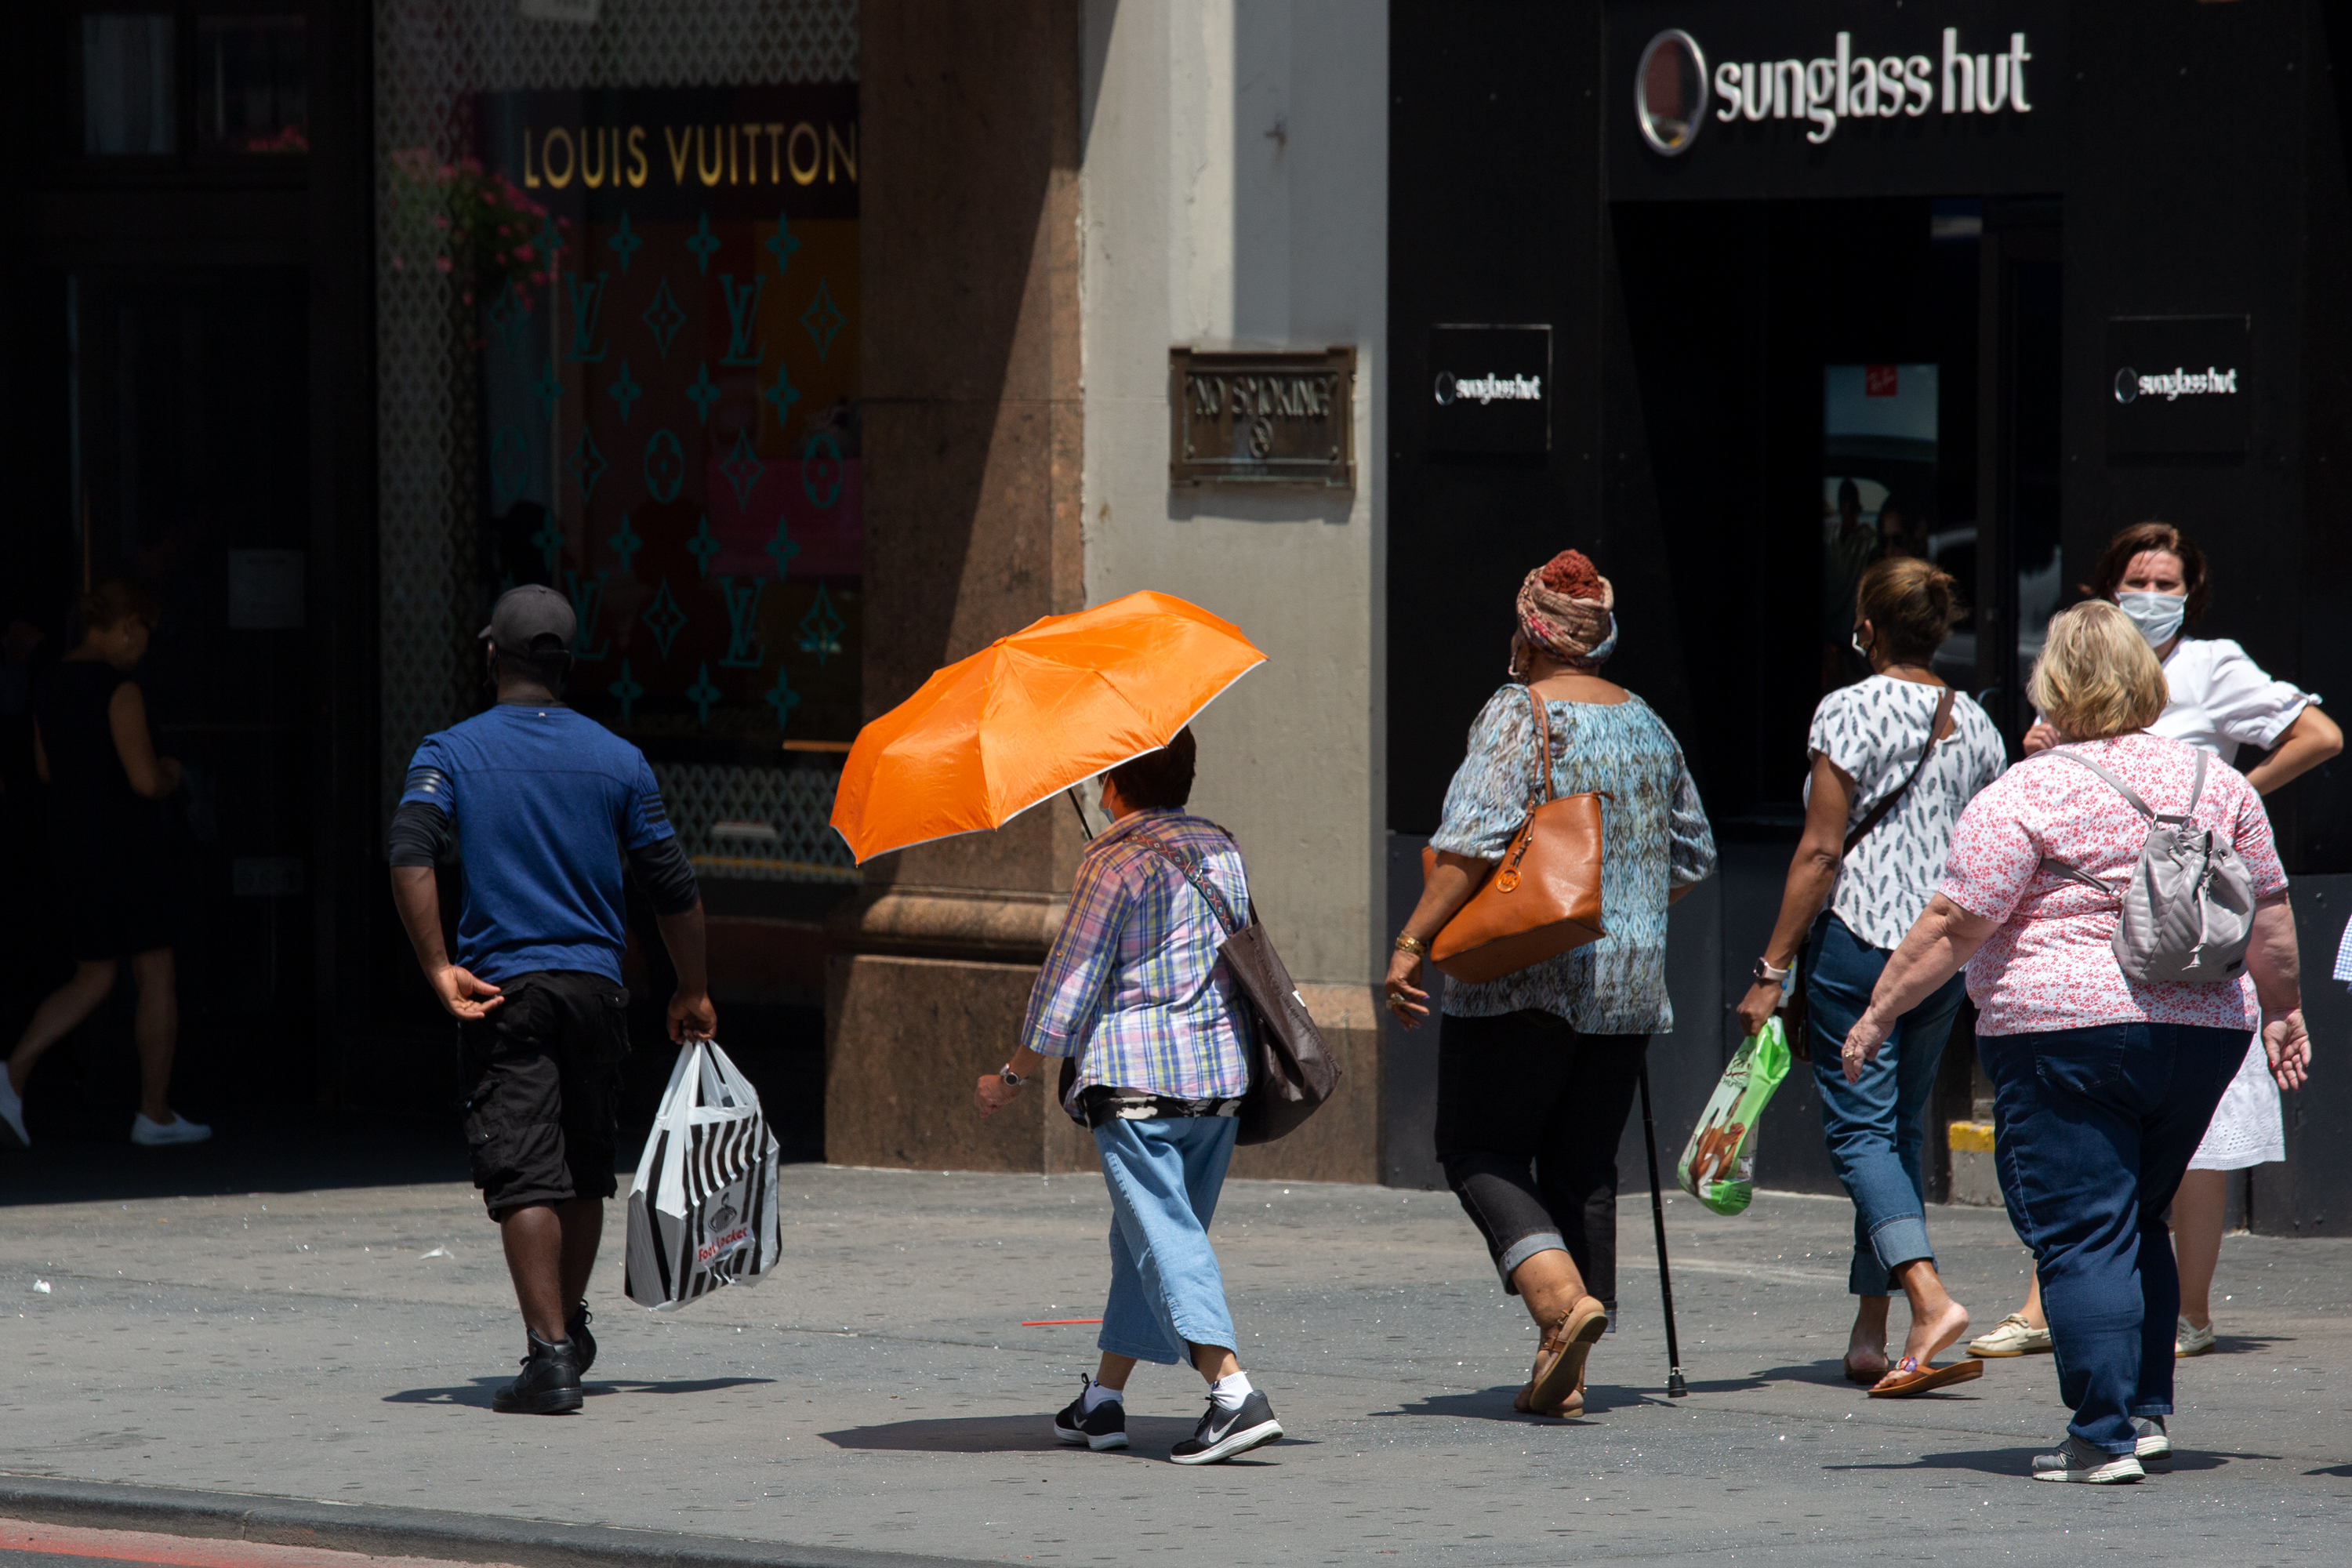 A woman shields herself from the blazing sun on West 34th Street, July 27, 2021.